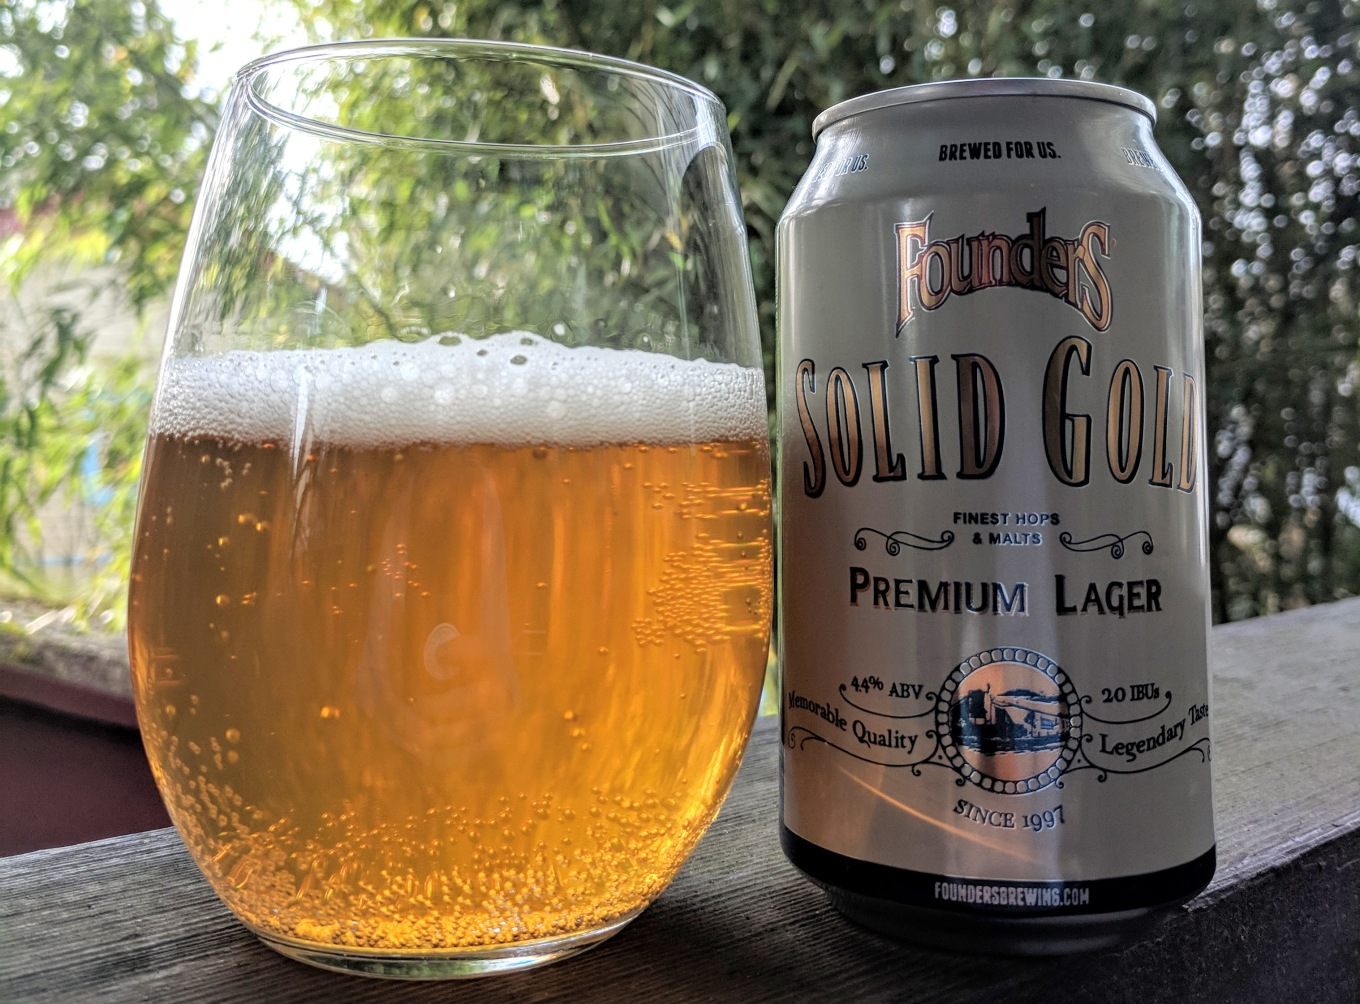 Founders Brewing Solid Gold Premium Lager